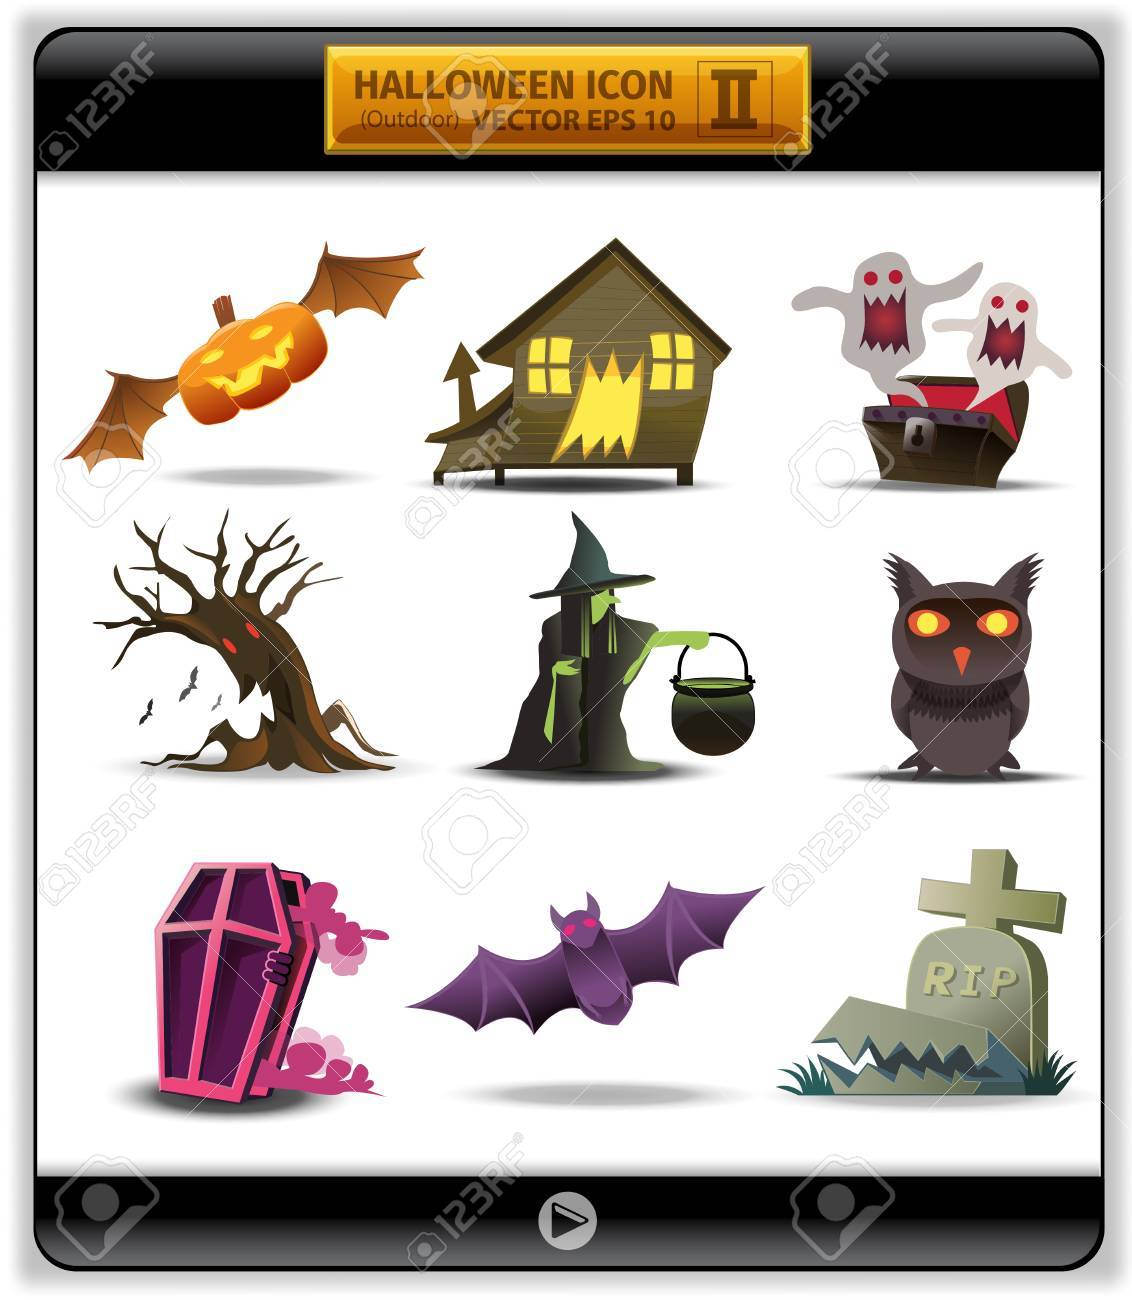 Halloween color icon 2  illustration account something outside